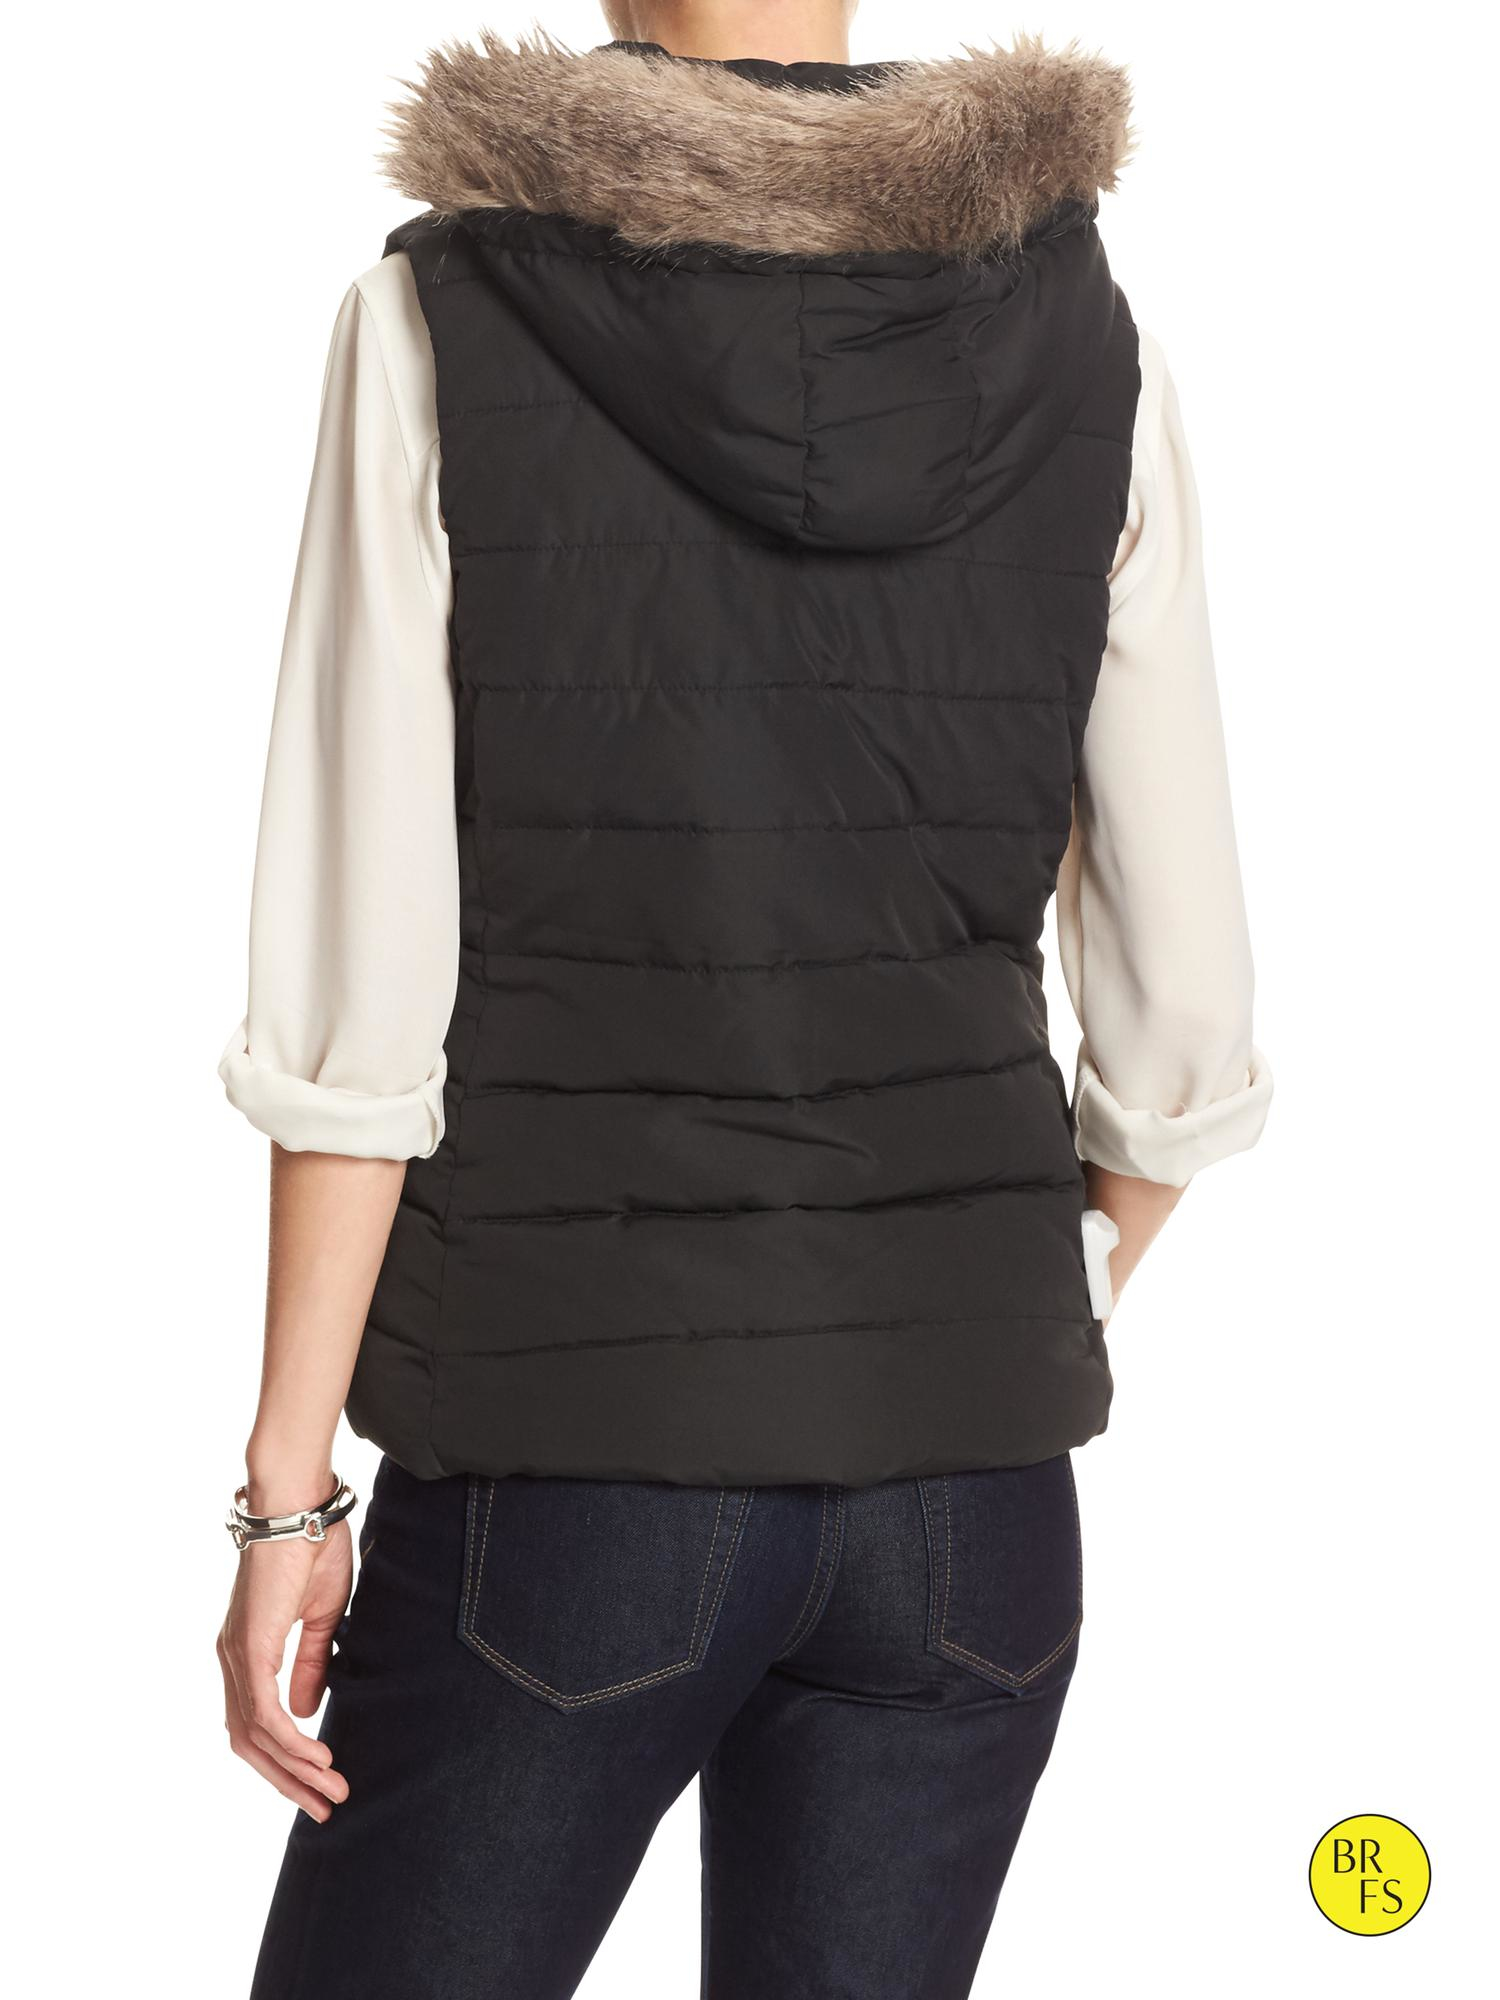 Banana republic photo vest Port Manteaux Word Maker - OneLook Dictionary Search